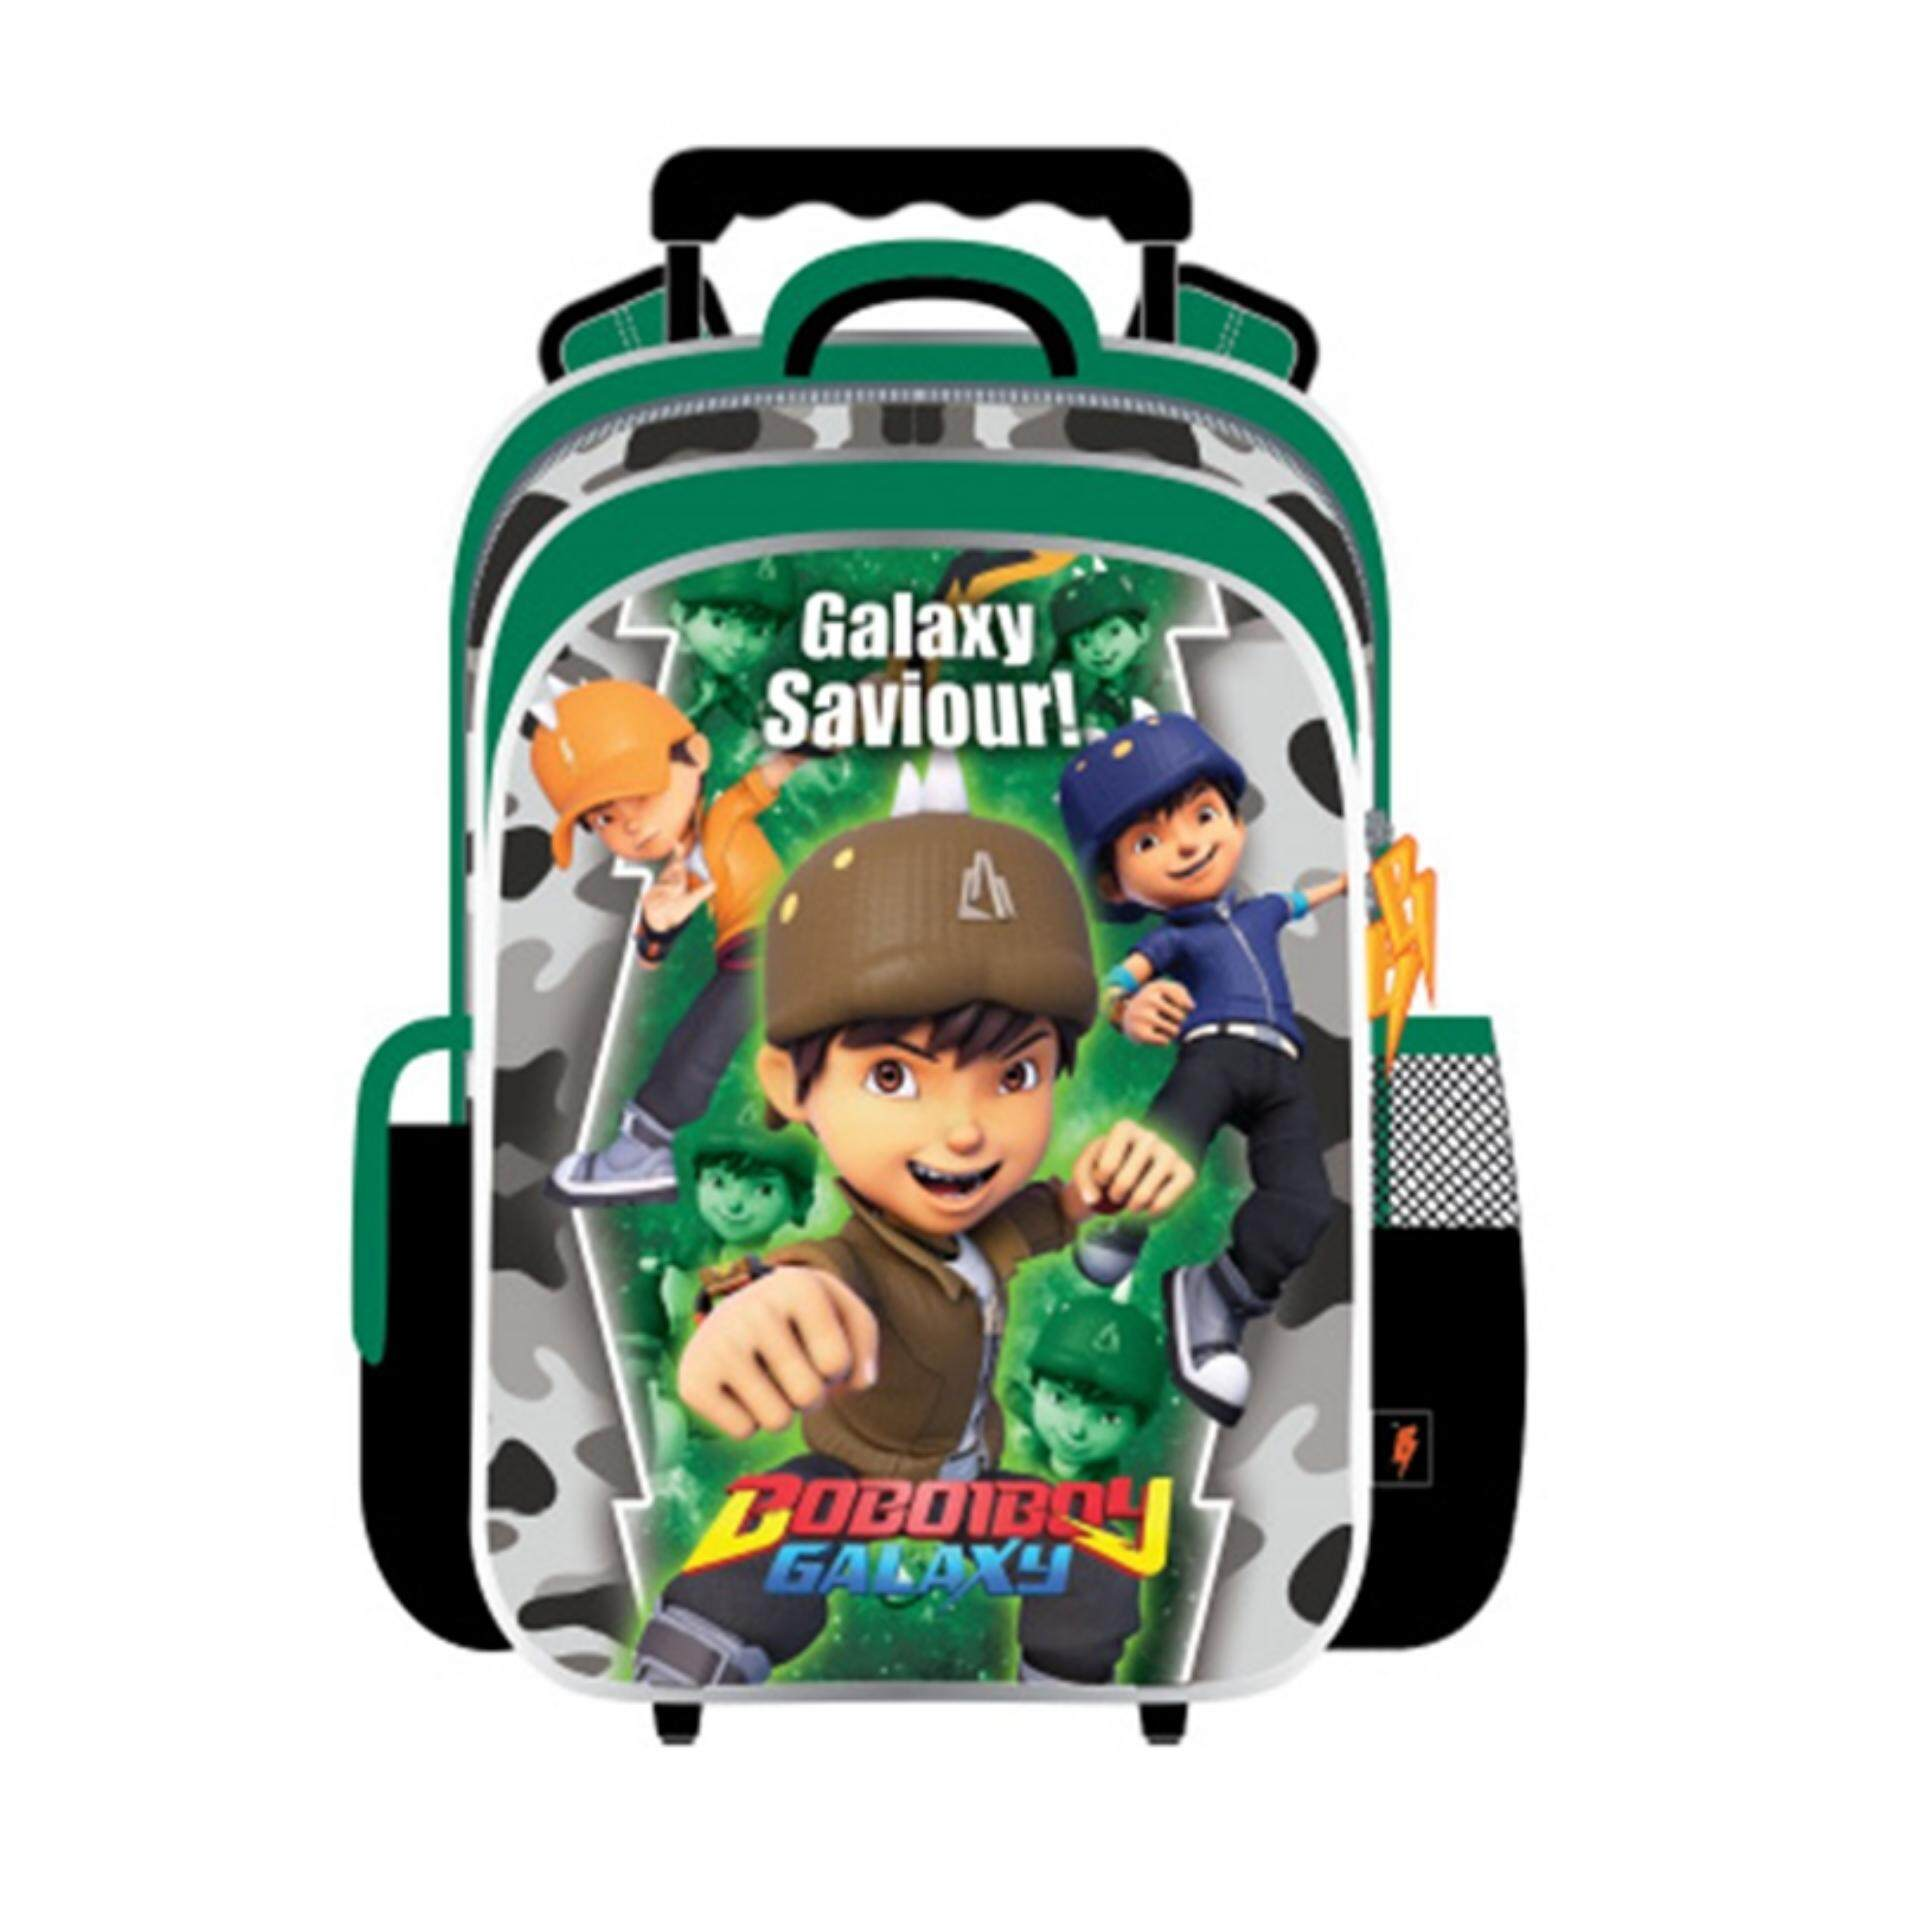 Komic Produk Terbaru Phillipe Joordan North Tas Backpack Wanita Hijau Canvas Boboiboy Galaxy School Trolley Bag Green Colour